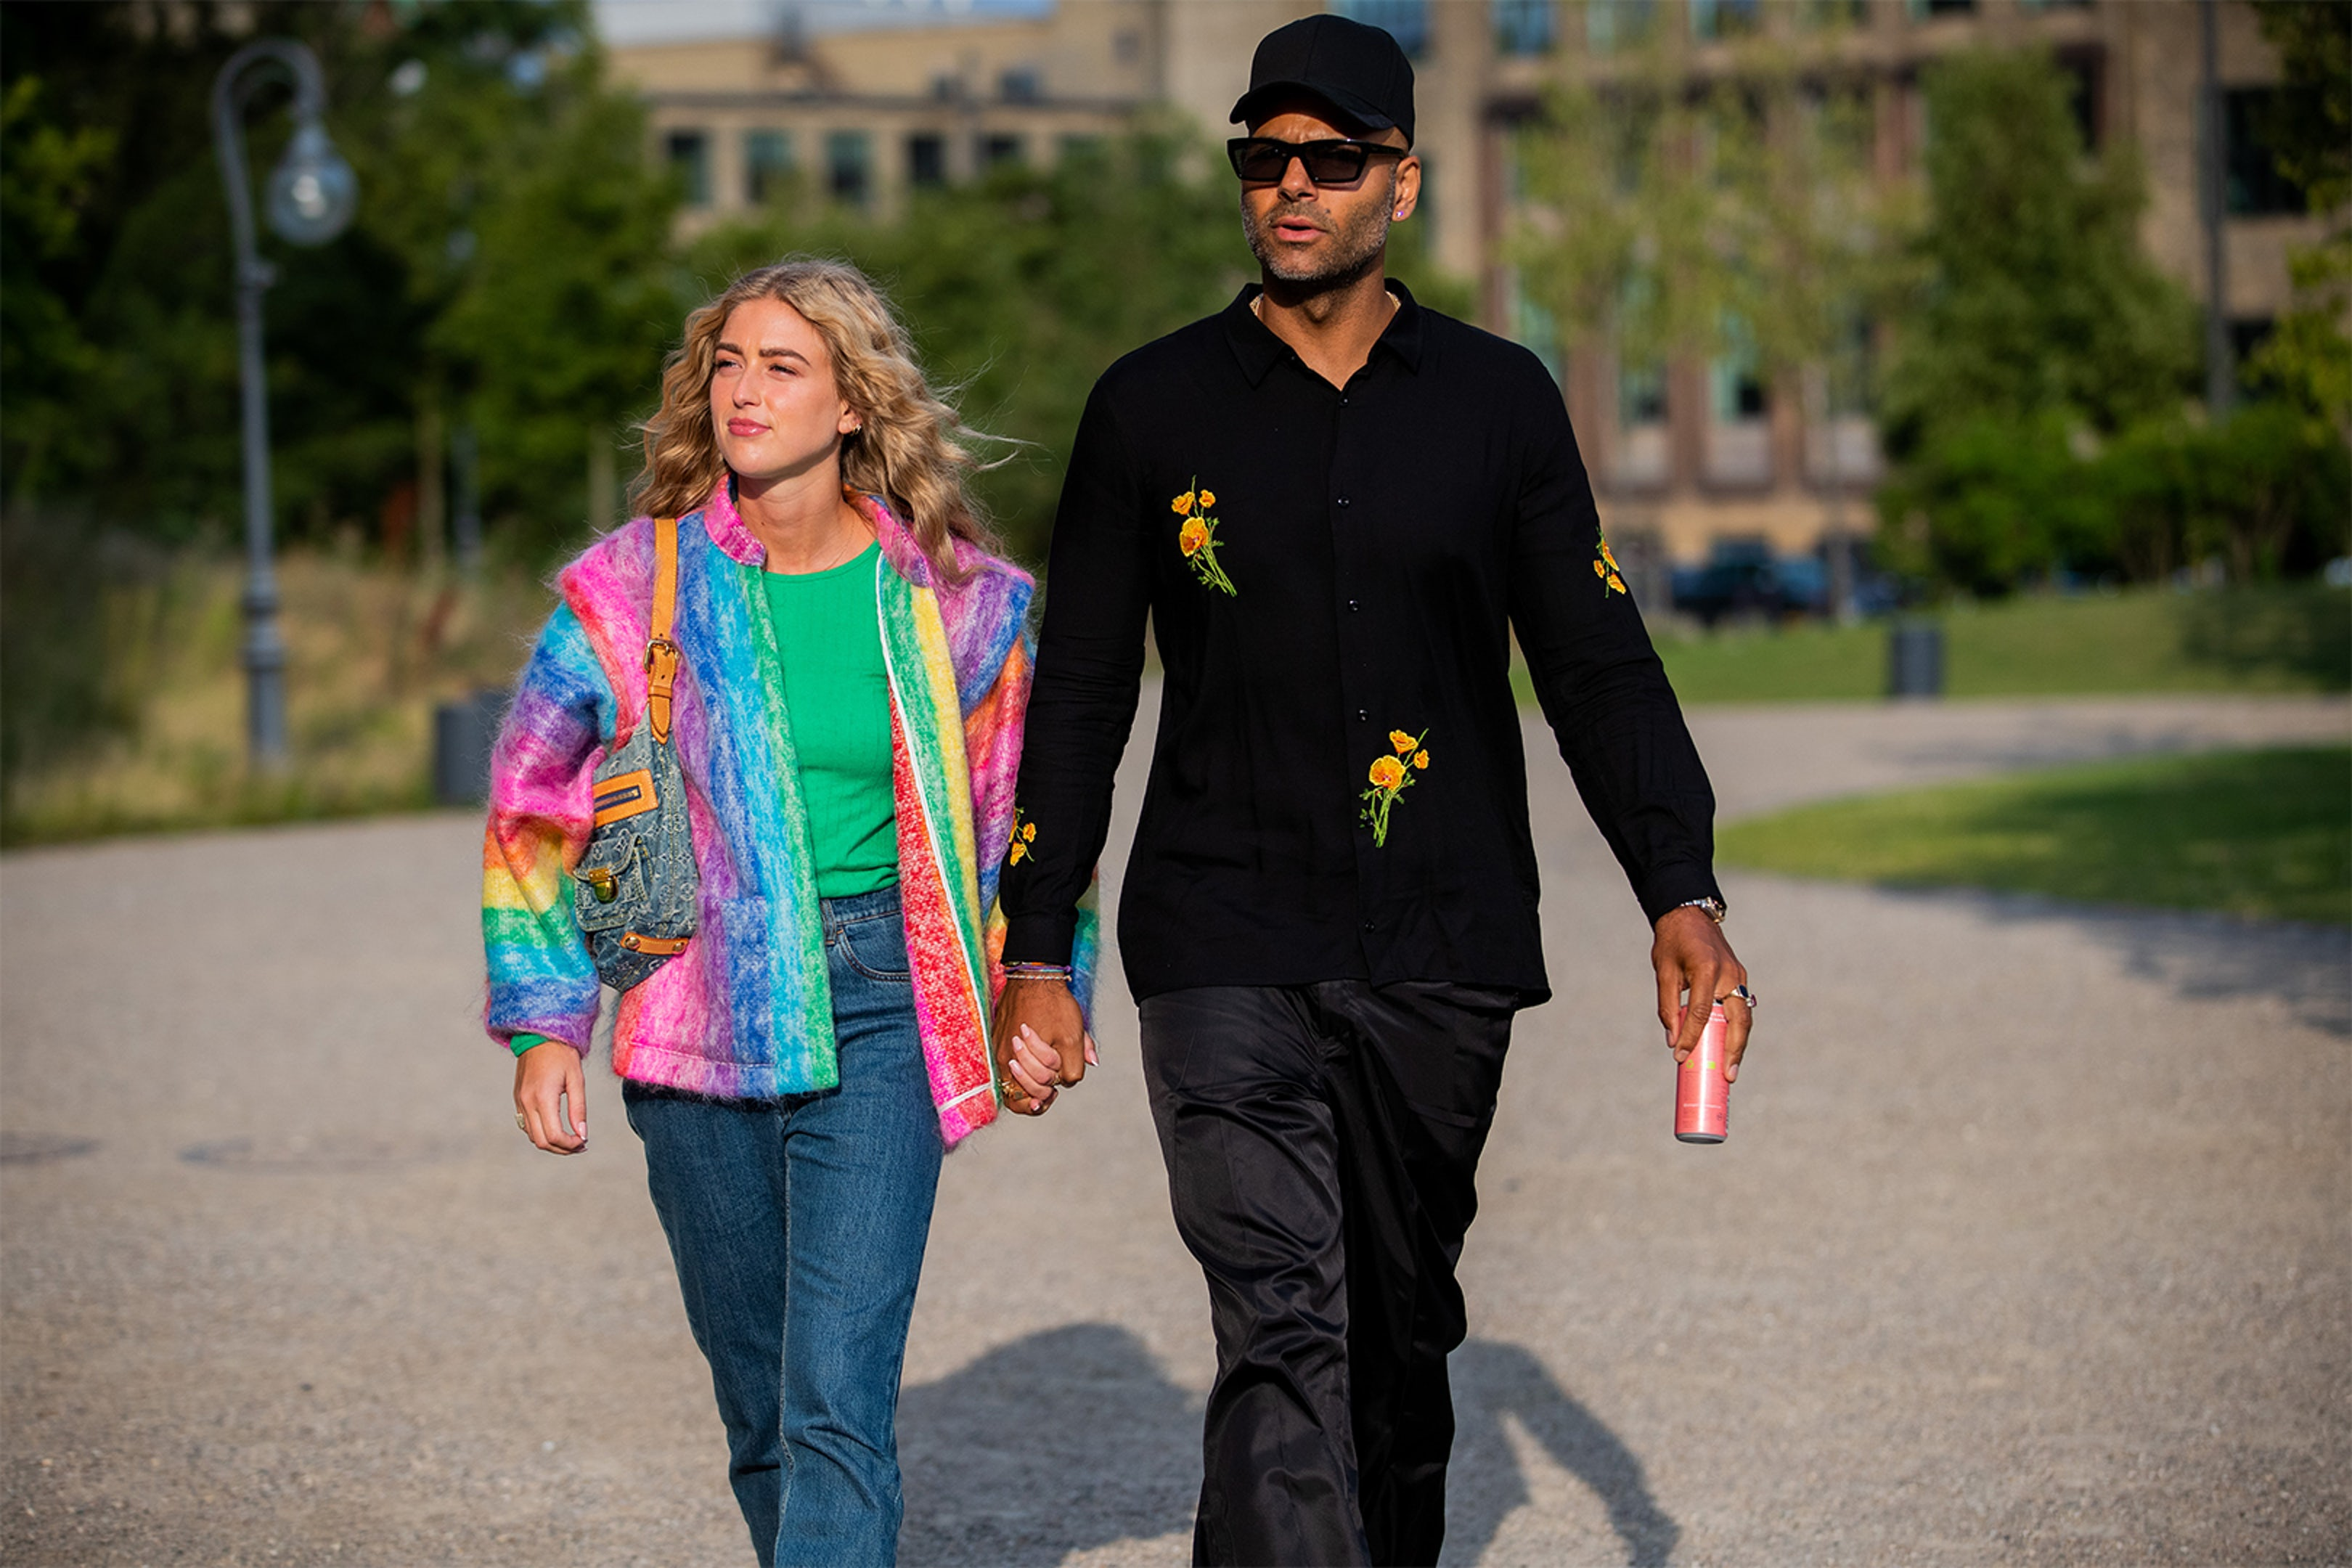 copenhagen fashion week couple 2